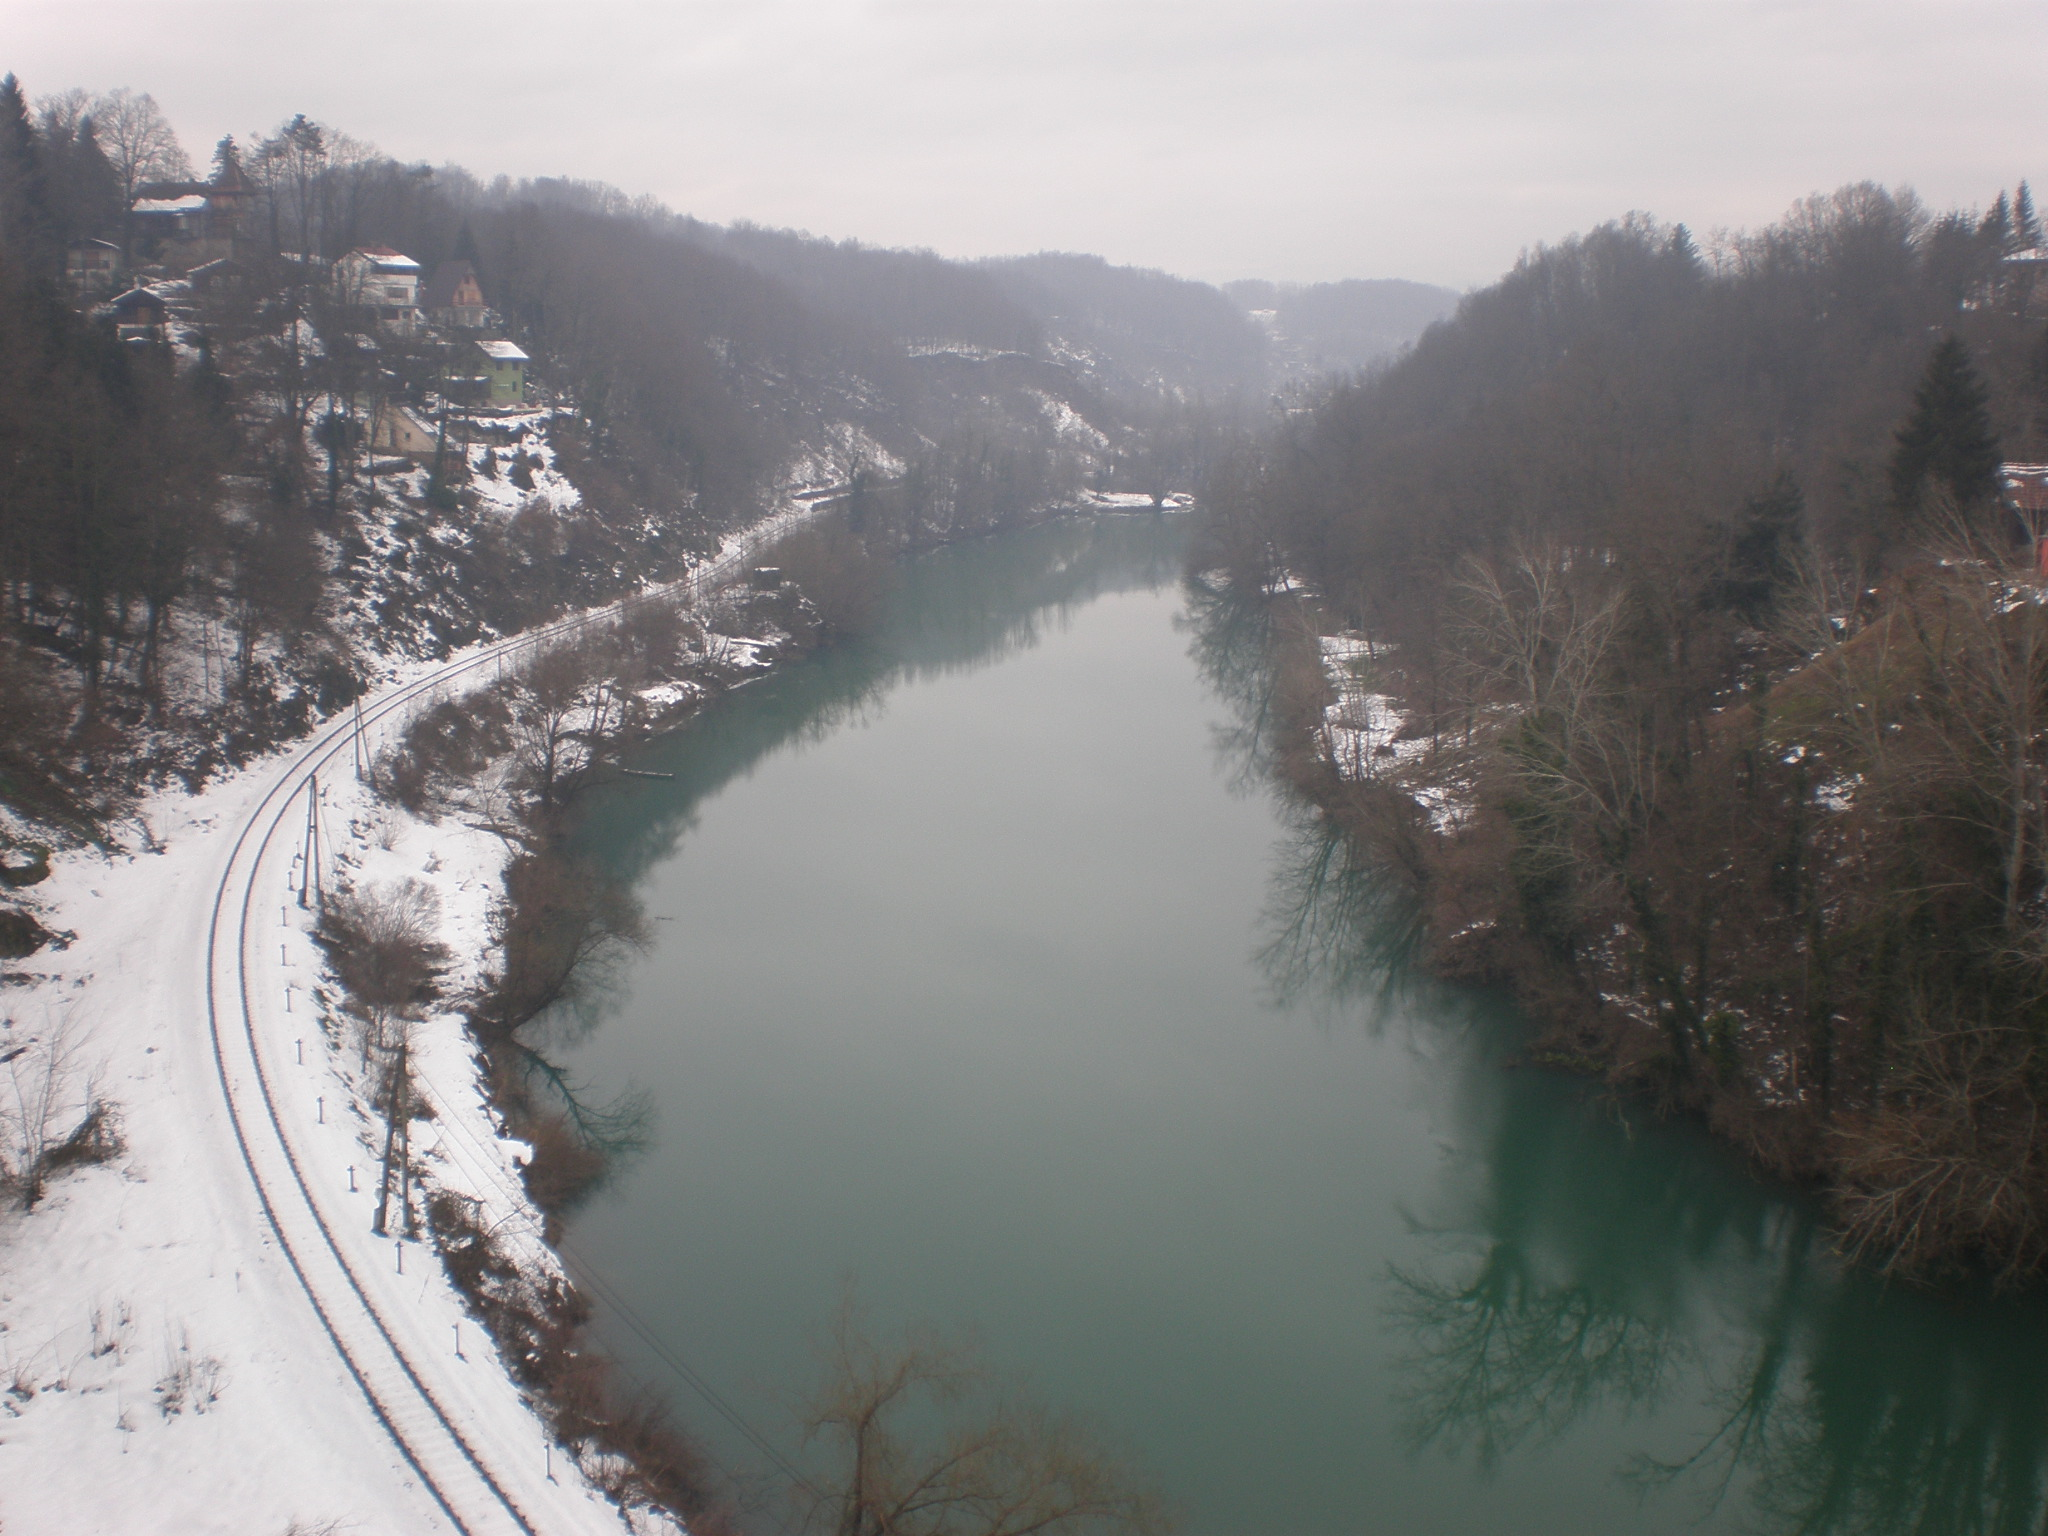 the view of River Kupa from the castle